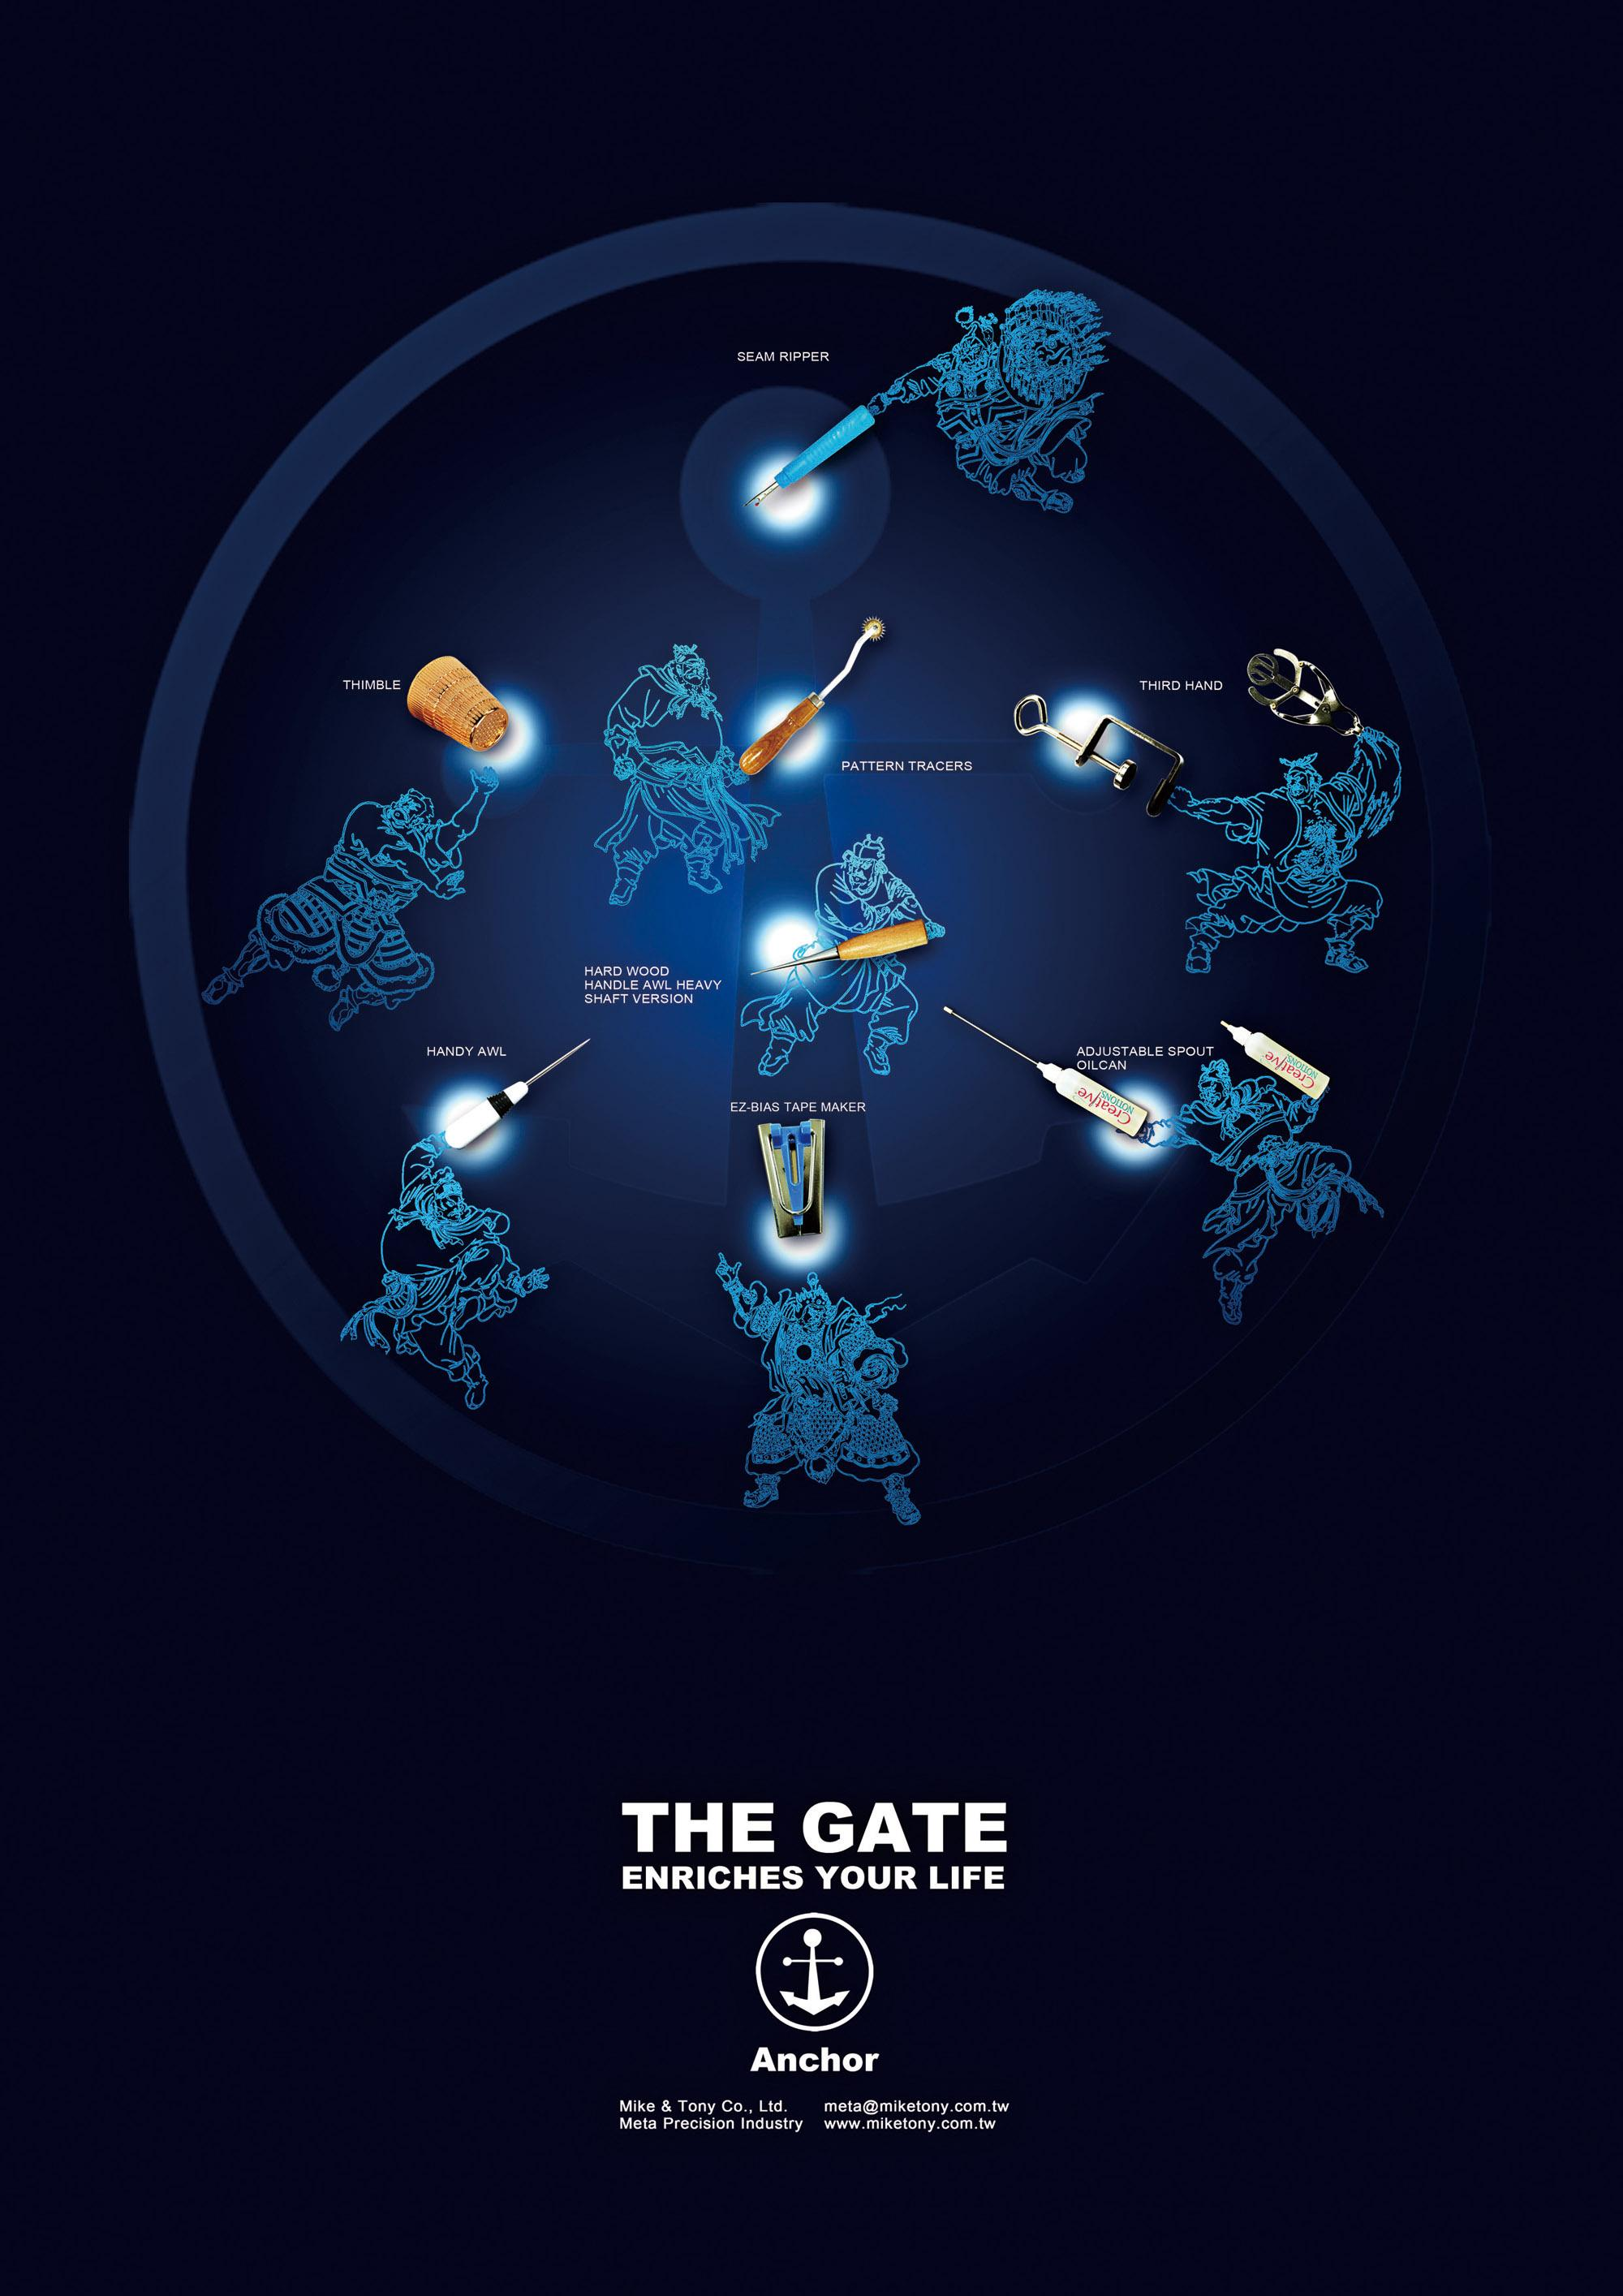 Anchor Print Ad - The Gate